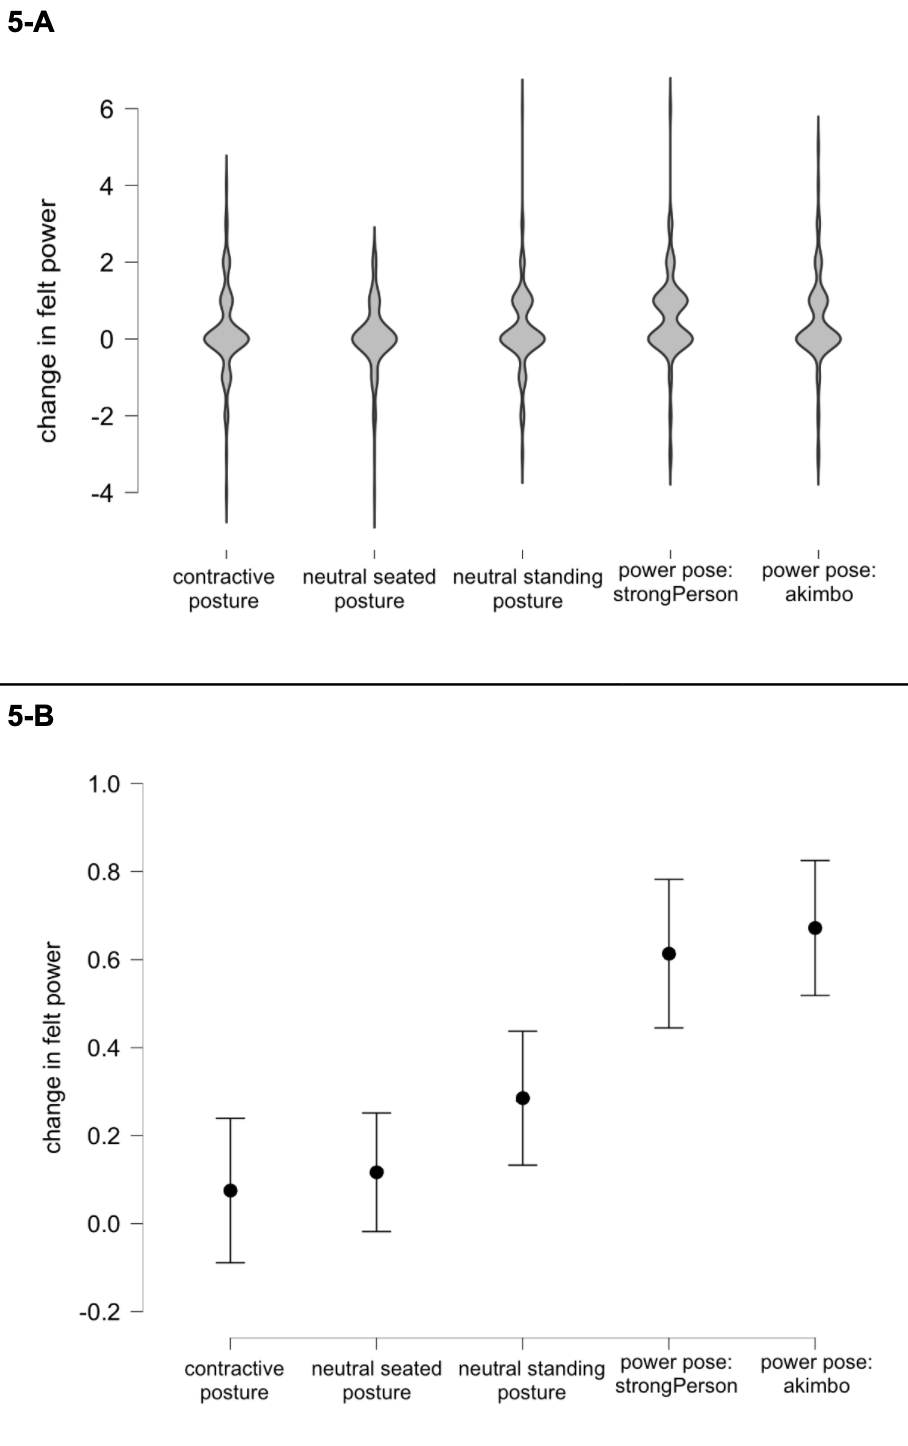 Figure Five: Changes in felt power following one minute of posing. 5-A: The distributions of all participants' results. These violin plots show the probability density of data at different values of reported feelings of power. Power posing appeared to increase the subjective power that participants reported, relative to both the true controls and the contractive posture group. However, as noted in the body of the text, the effect sizes here are tiny. These plots highlight how subtle the differences were.   5-B: The means and confidence intervals associated with the above results. Dots display the mean value for each group, while the bars show the 95% confidence intervals (CIs). (However, note that the data were non-normally distributed.)  Again, the visual differences between 5-A and 5-B highlight the fact that the mean changes for the neutral and power posing groups were larger than the median changes for these groups. When comparing the means between groups, the differences between the neutral and power posing groups are more obvious.